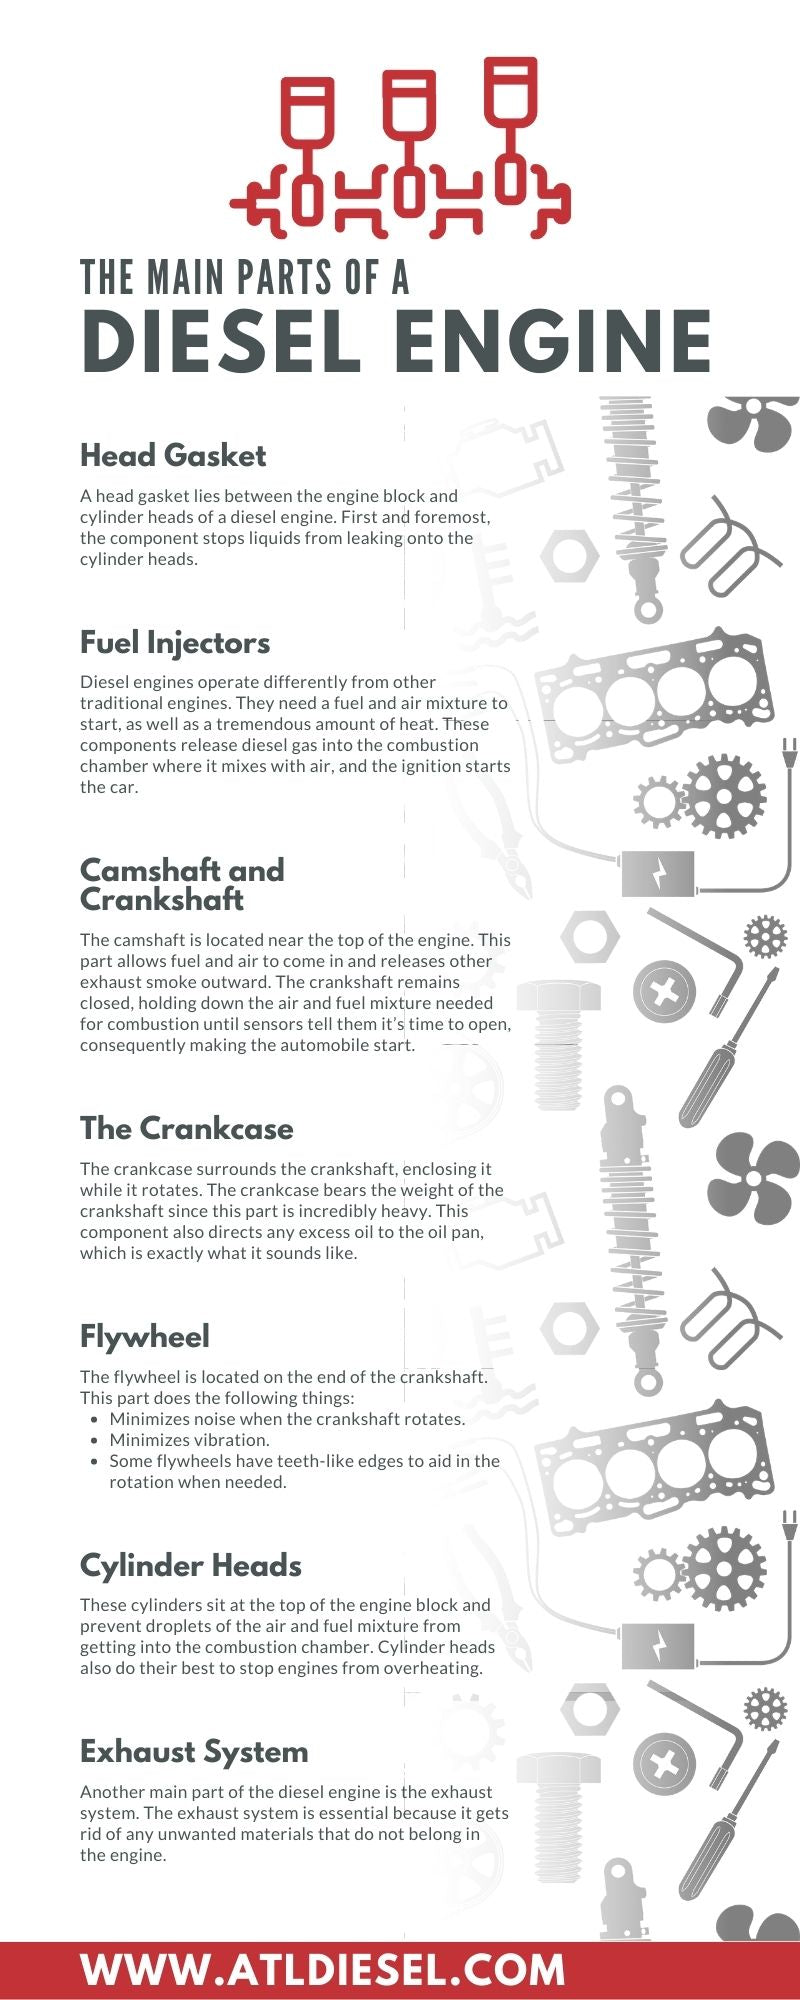 The Main Parts of a Diesel Engine